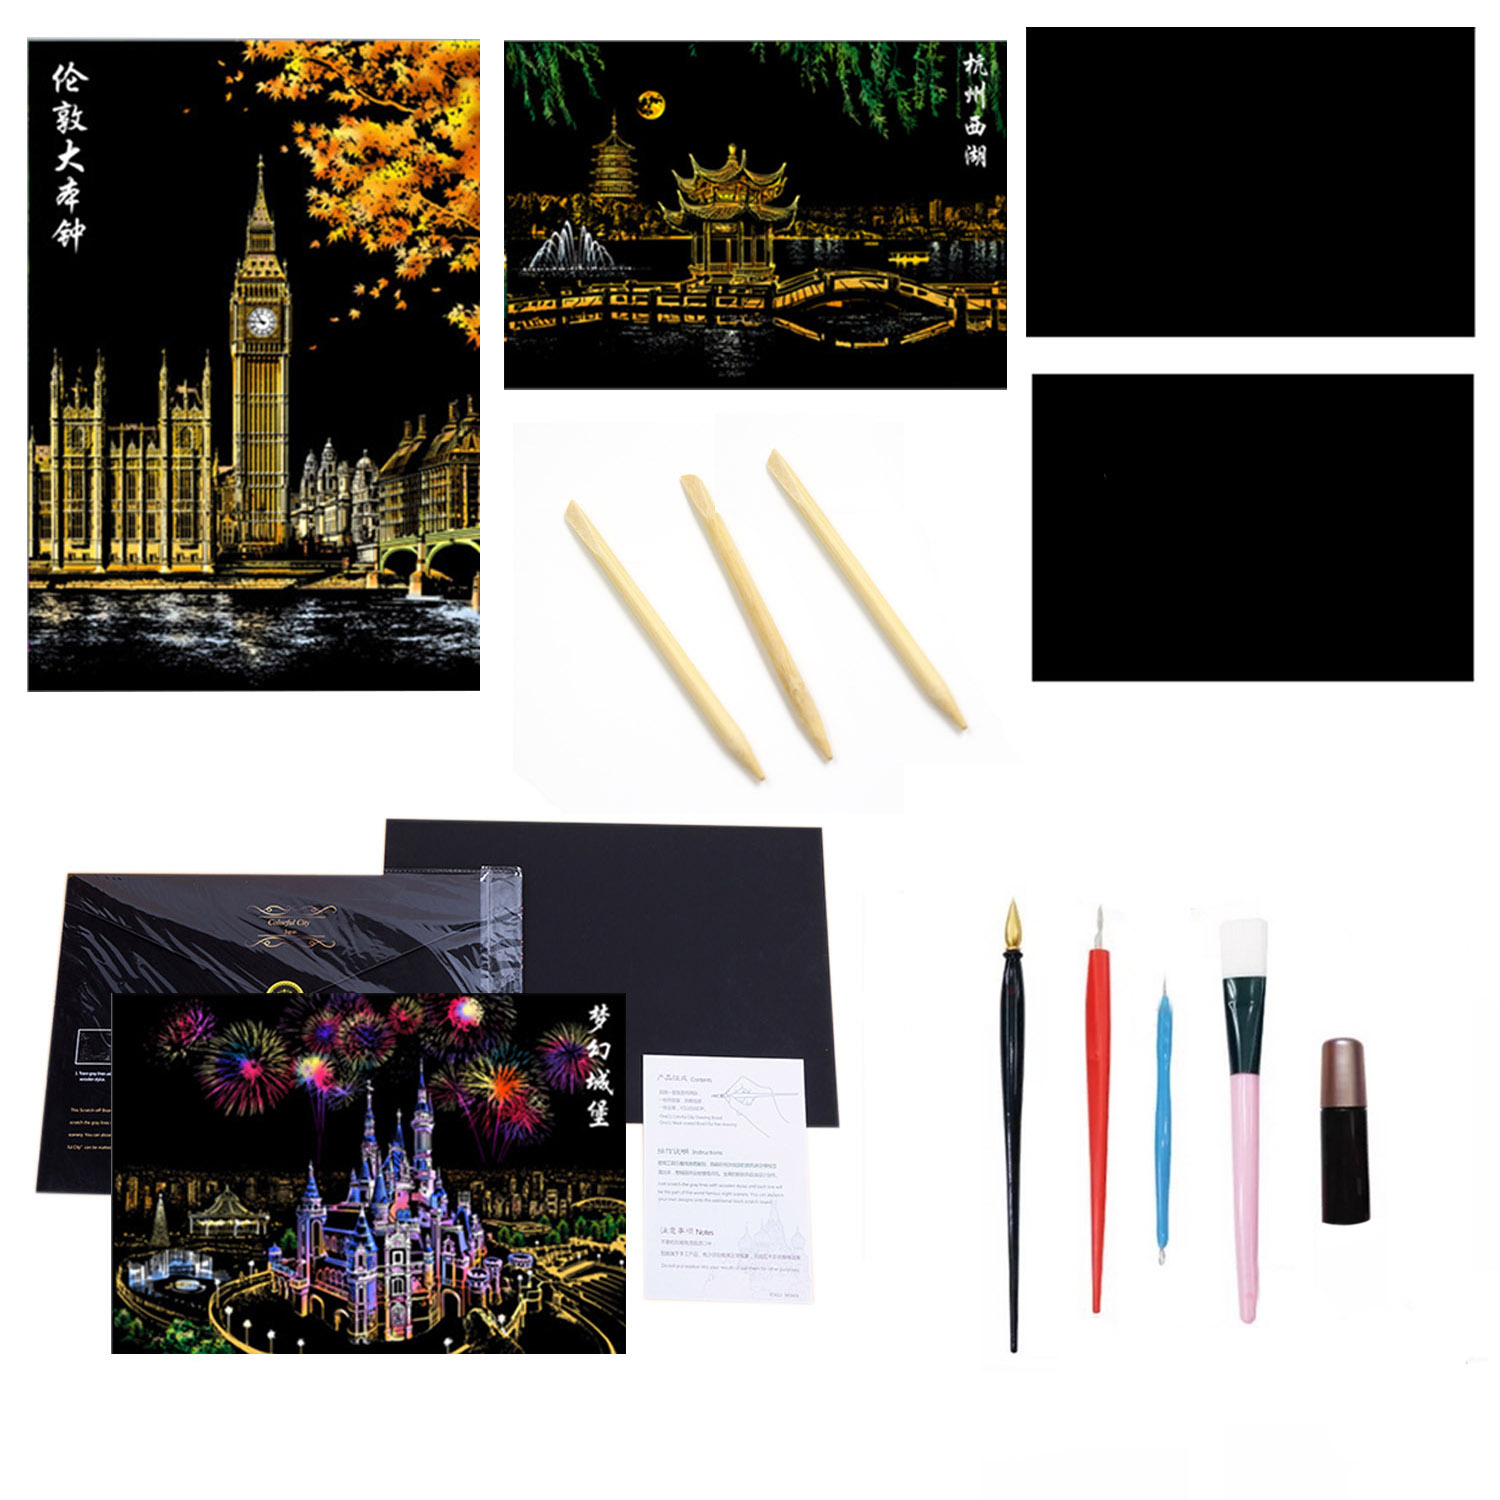 3pcs City Night View Scraping Painting With Small Scraper Repair Liquid Scratch Pen Black Brush 4 Bamboo Pens For Painting Tool